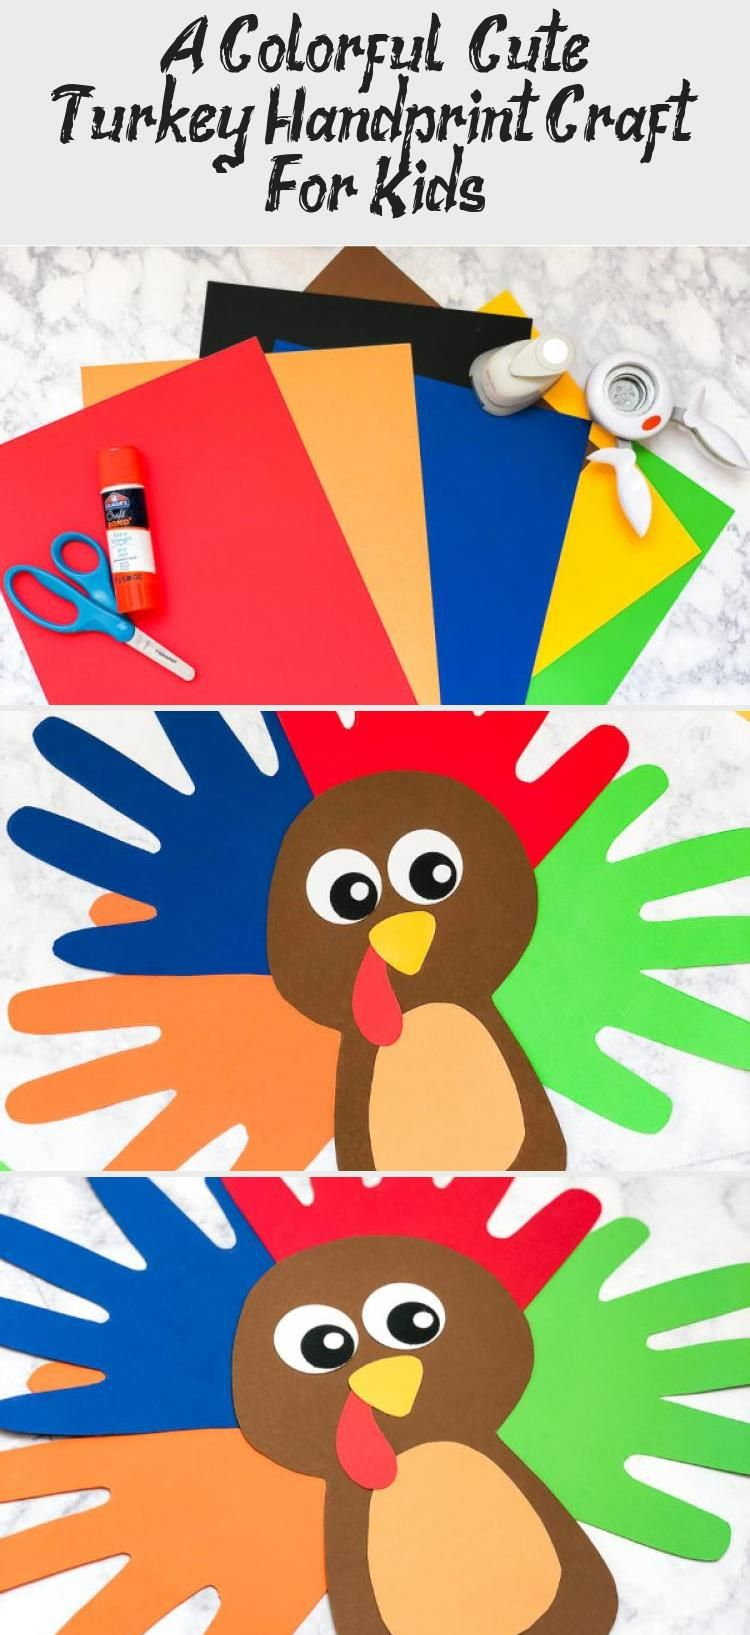 A Colorful & Cute Turkey Handprint Craft For Kids #handprintturkey